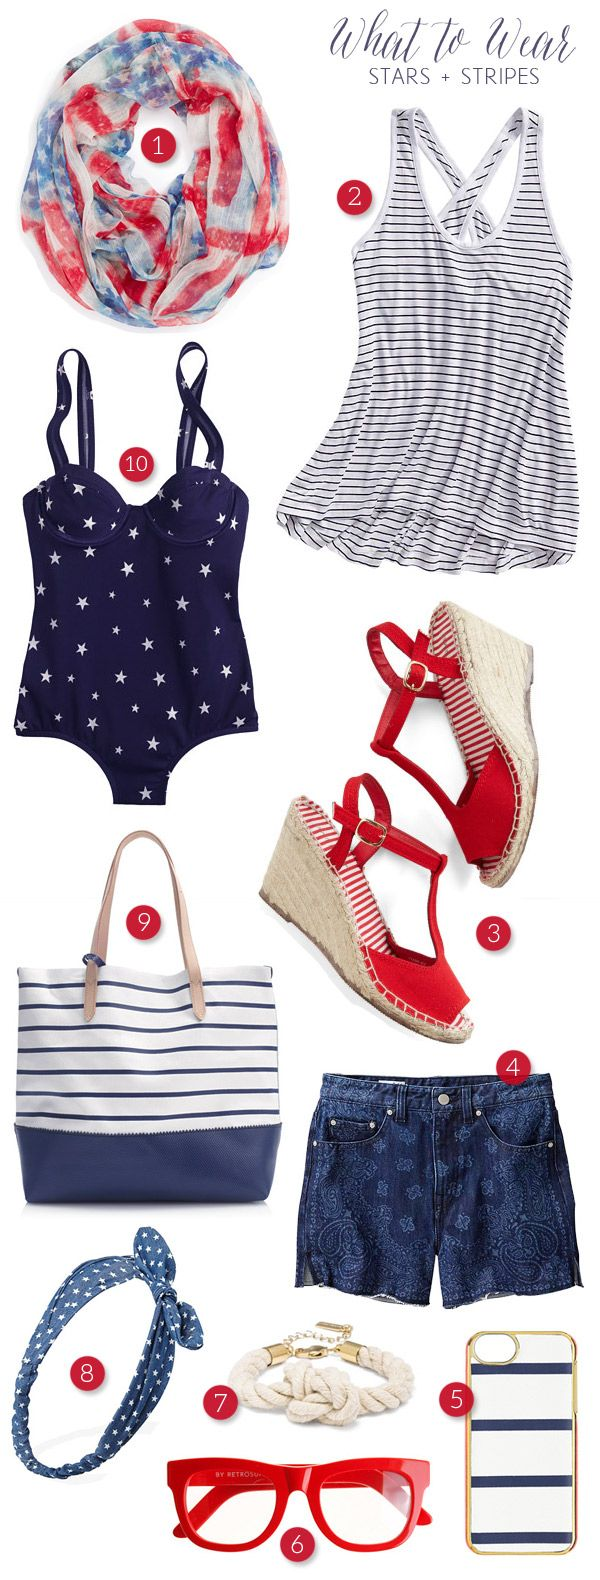 Stars and stripes fashion for the 4th of July! #patriotic #redwhiteblue